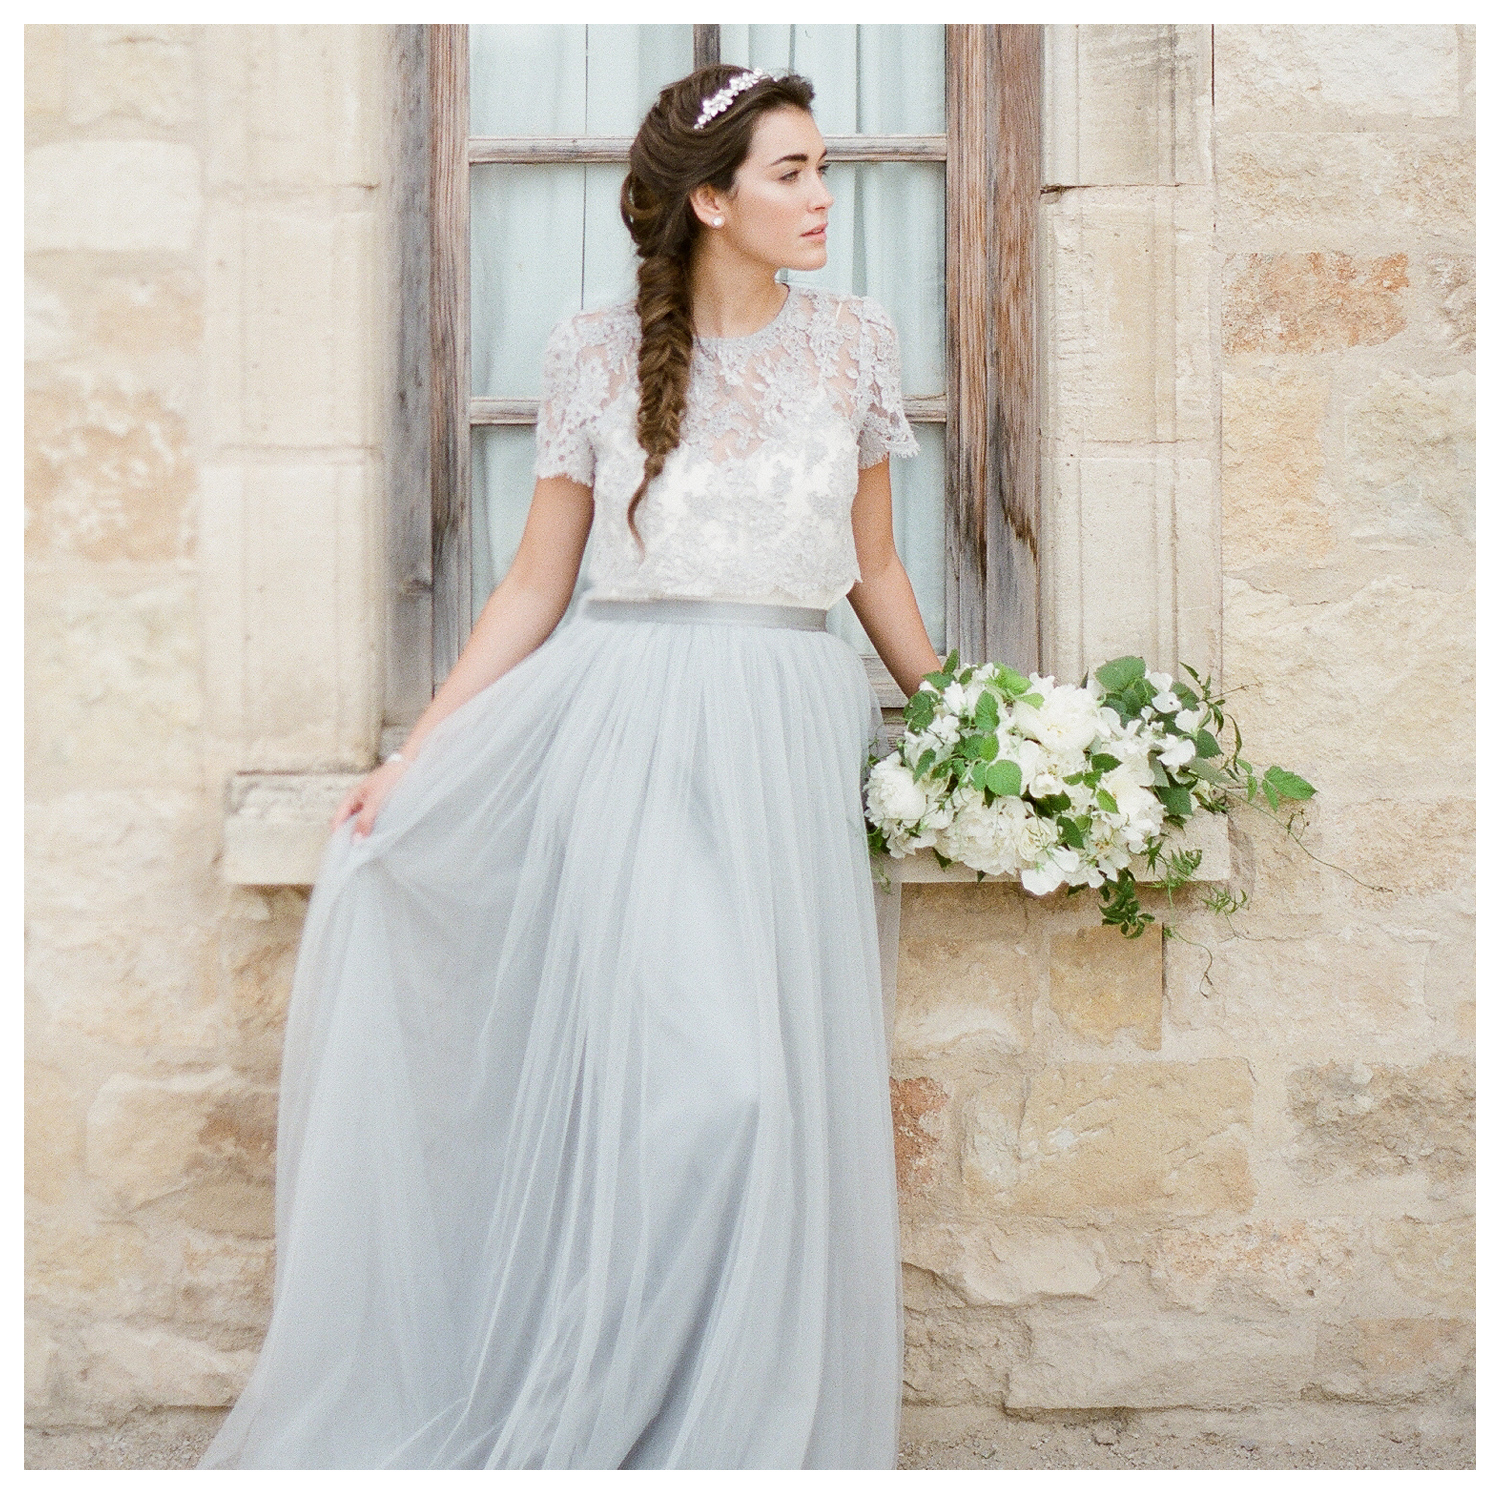 Bel-Aire-Bridal-Serenity--KT-Merry-3